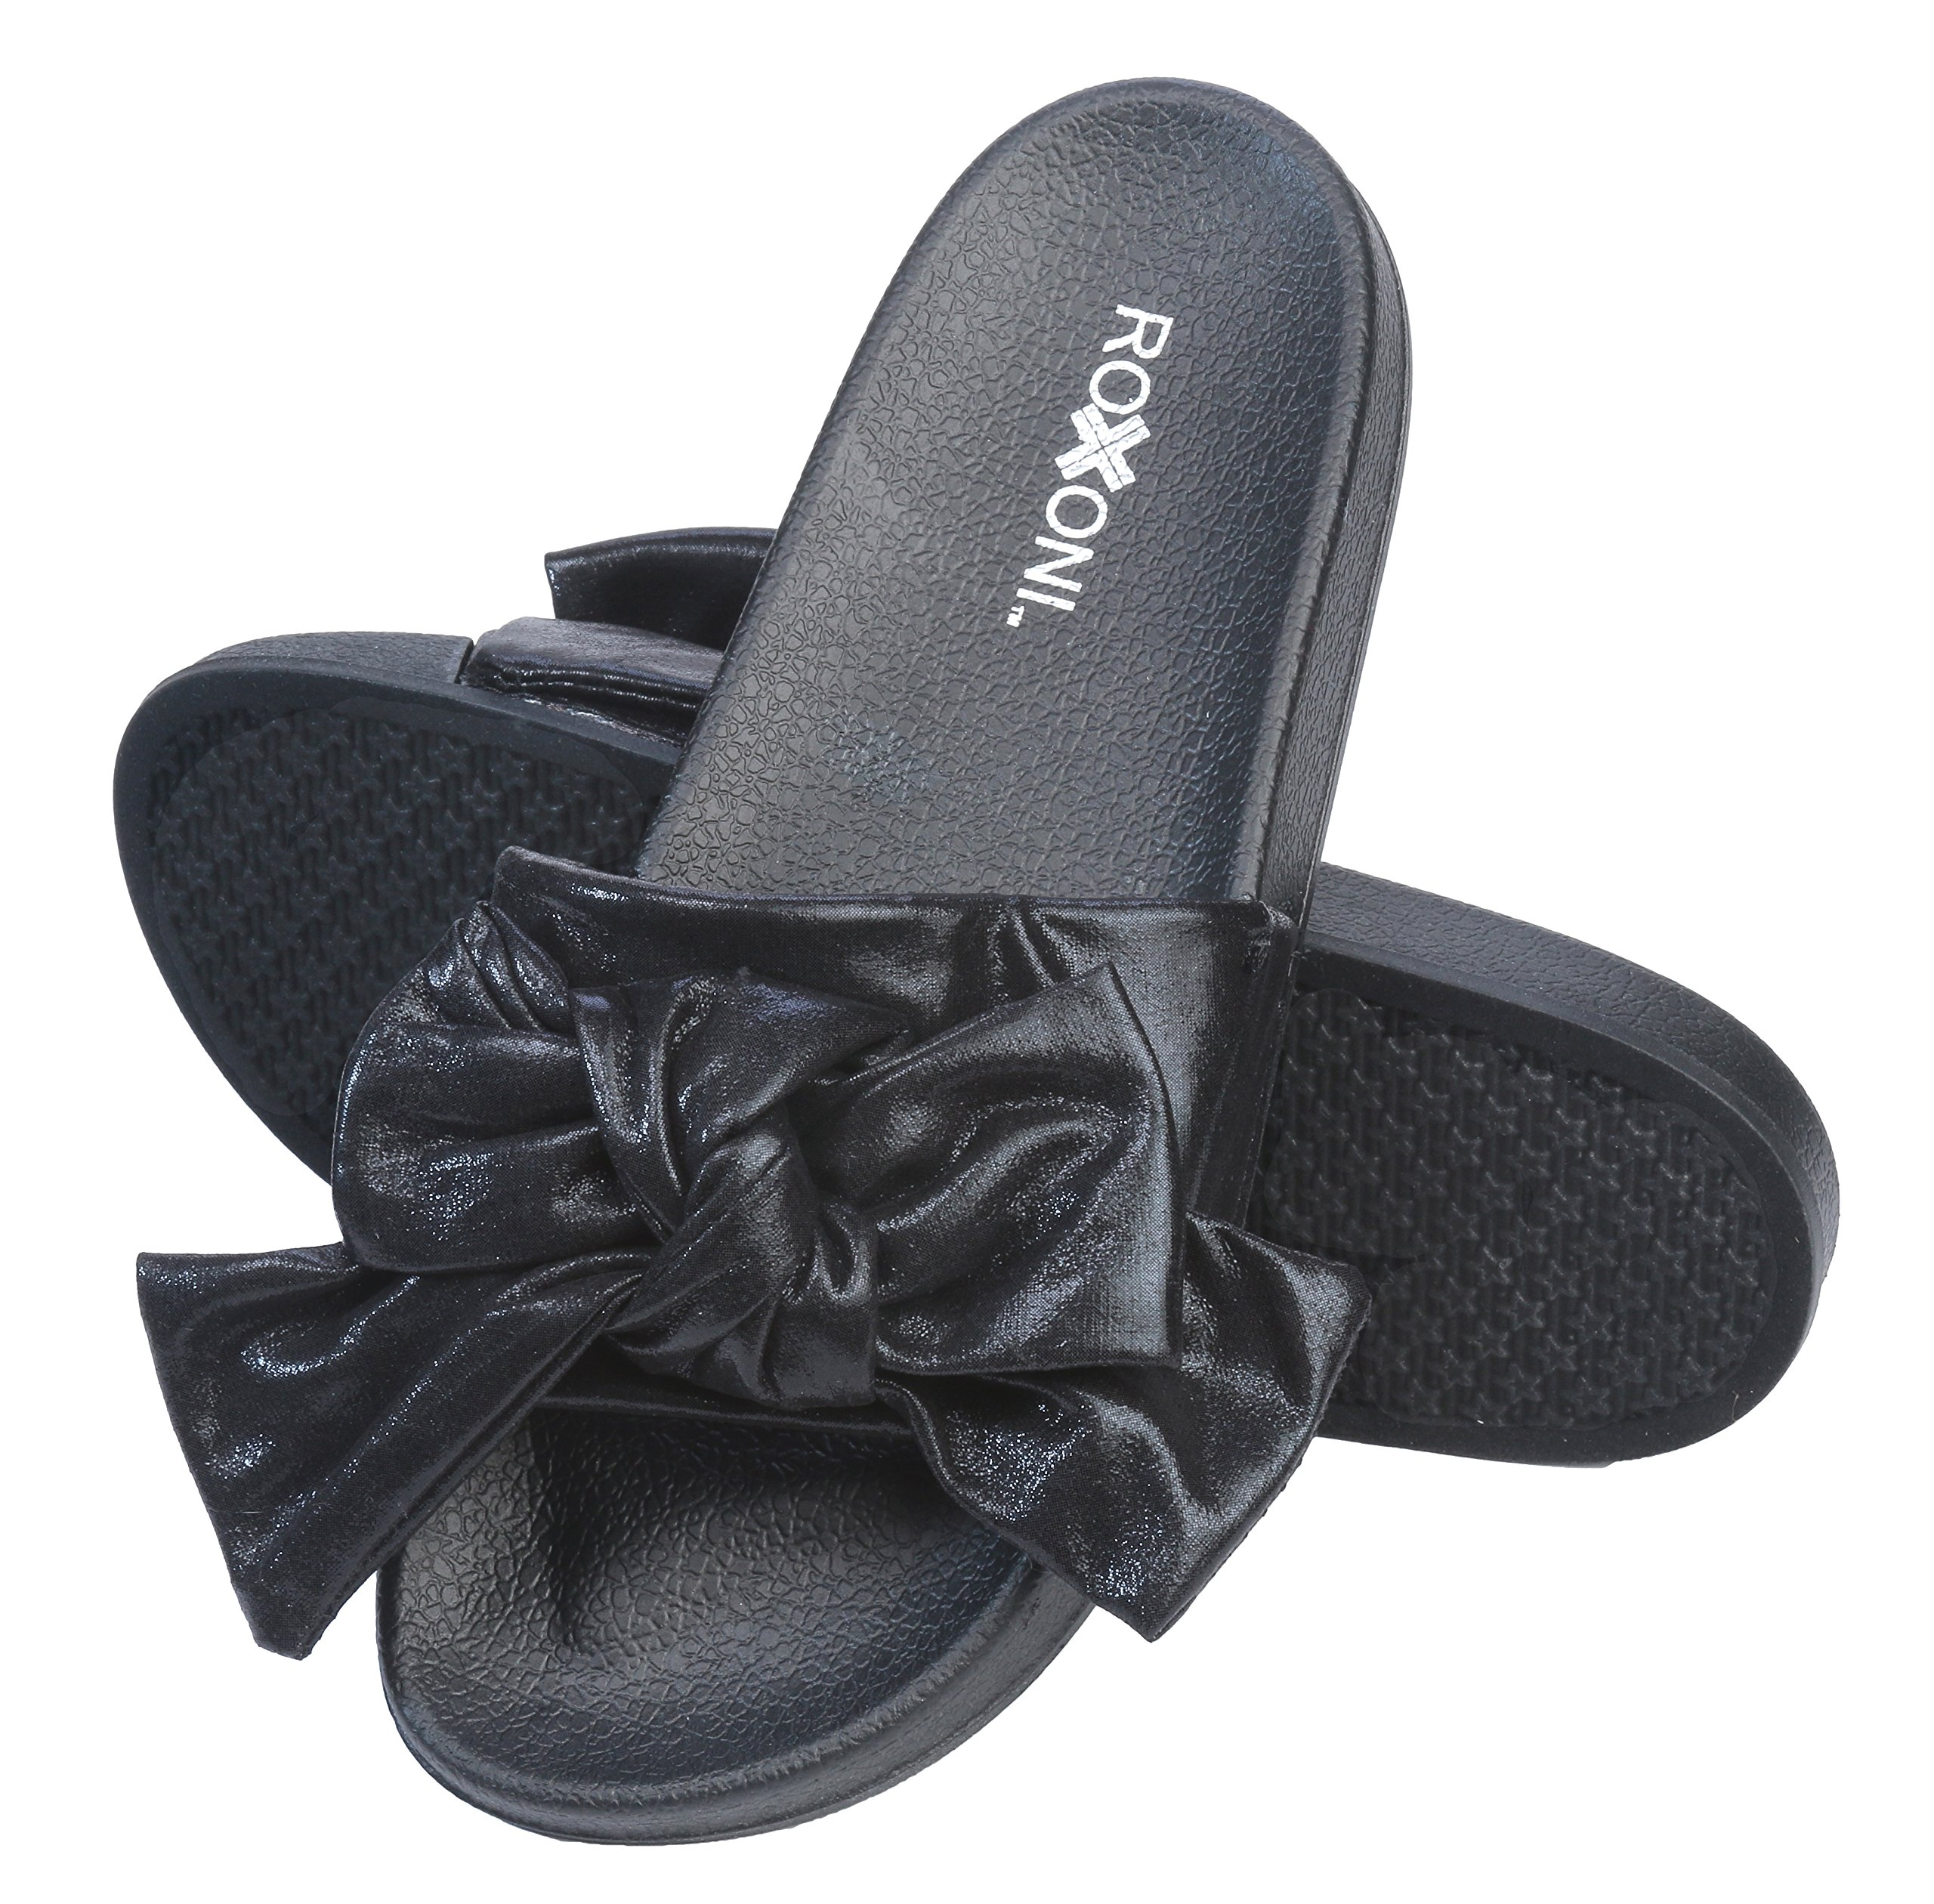 Roxoni Womens Bow Tie Sandal Open Toe Summer Slide Slipper -Great for Indoor/Outdoor by Roxoni